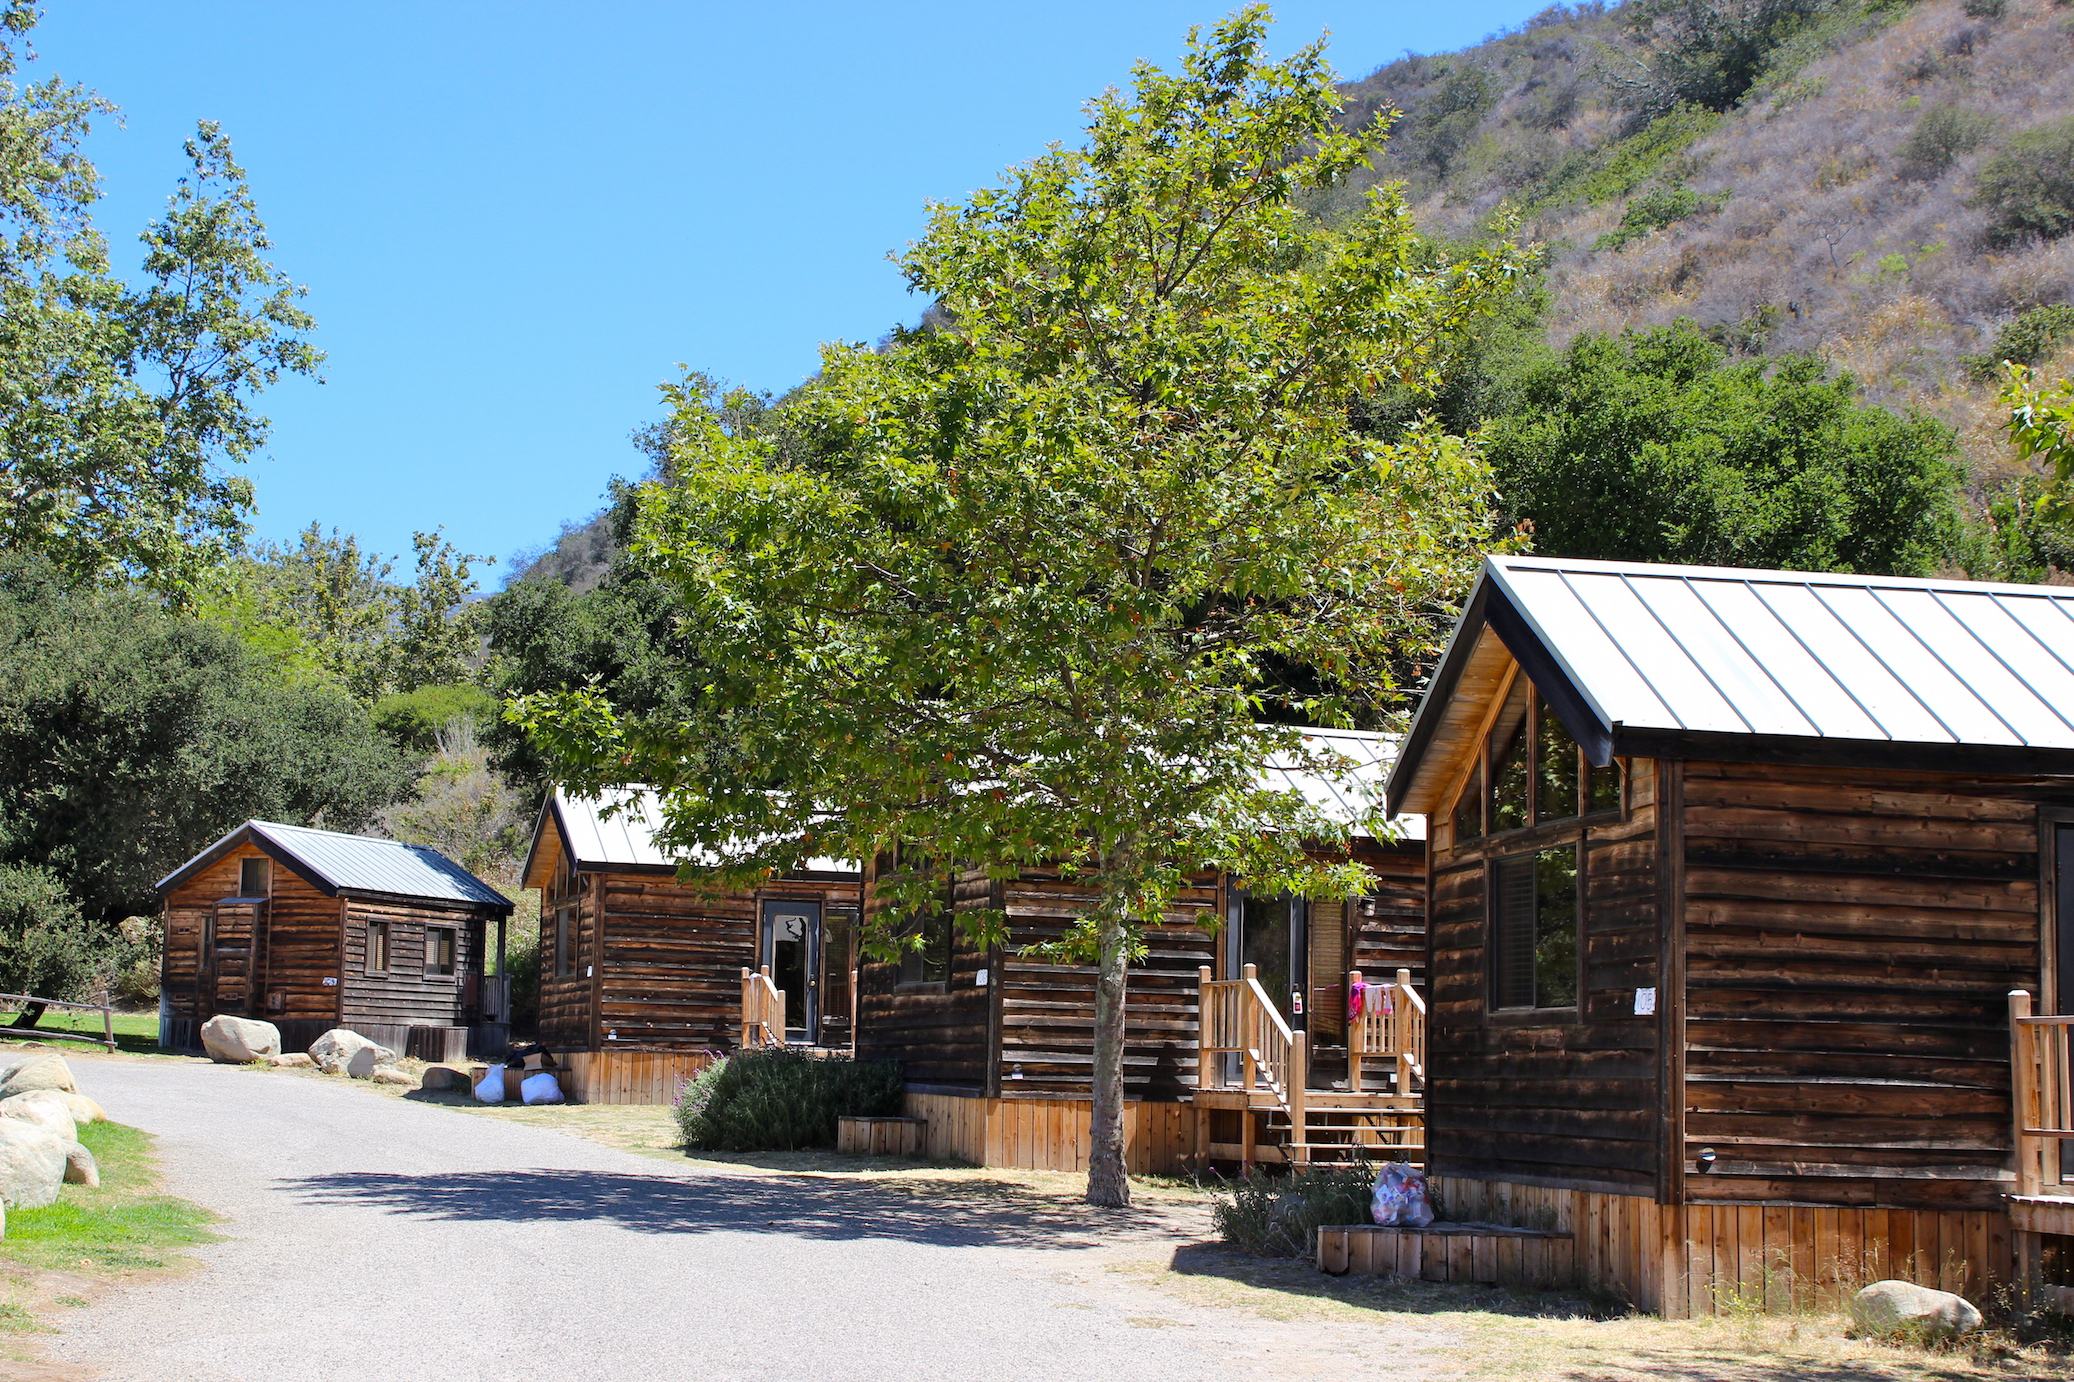 one of the most Affordable Beachfront Hotels in America is El Capitan Canyon